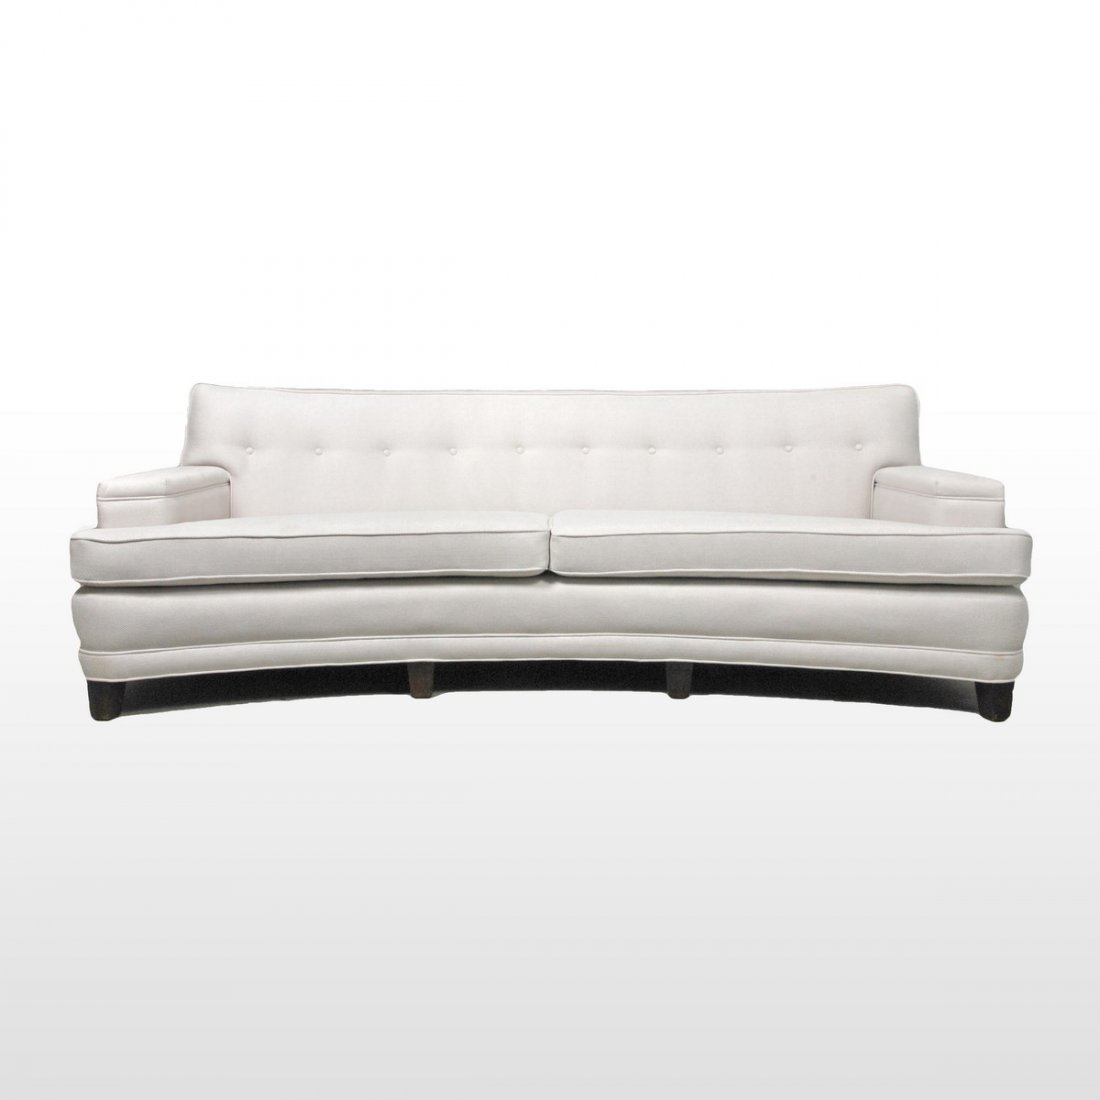 Edward Wormley Curved Front Sofa